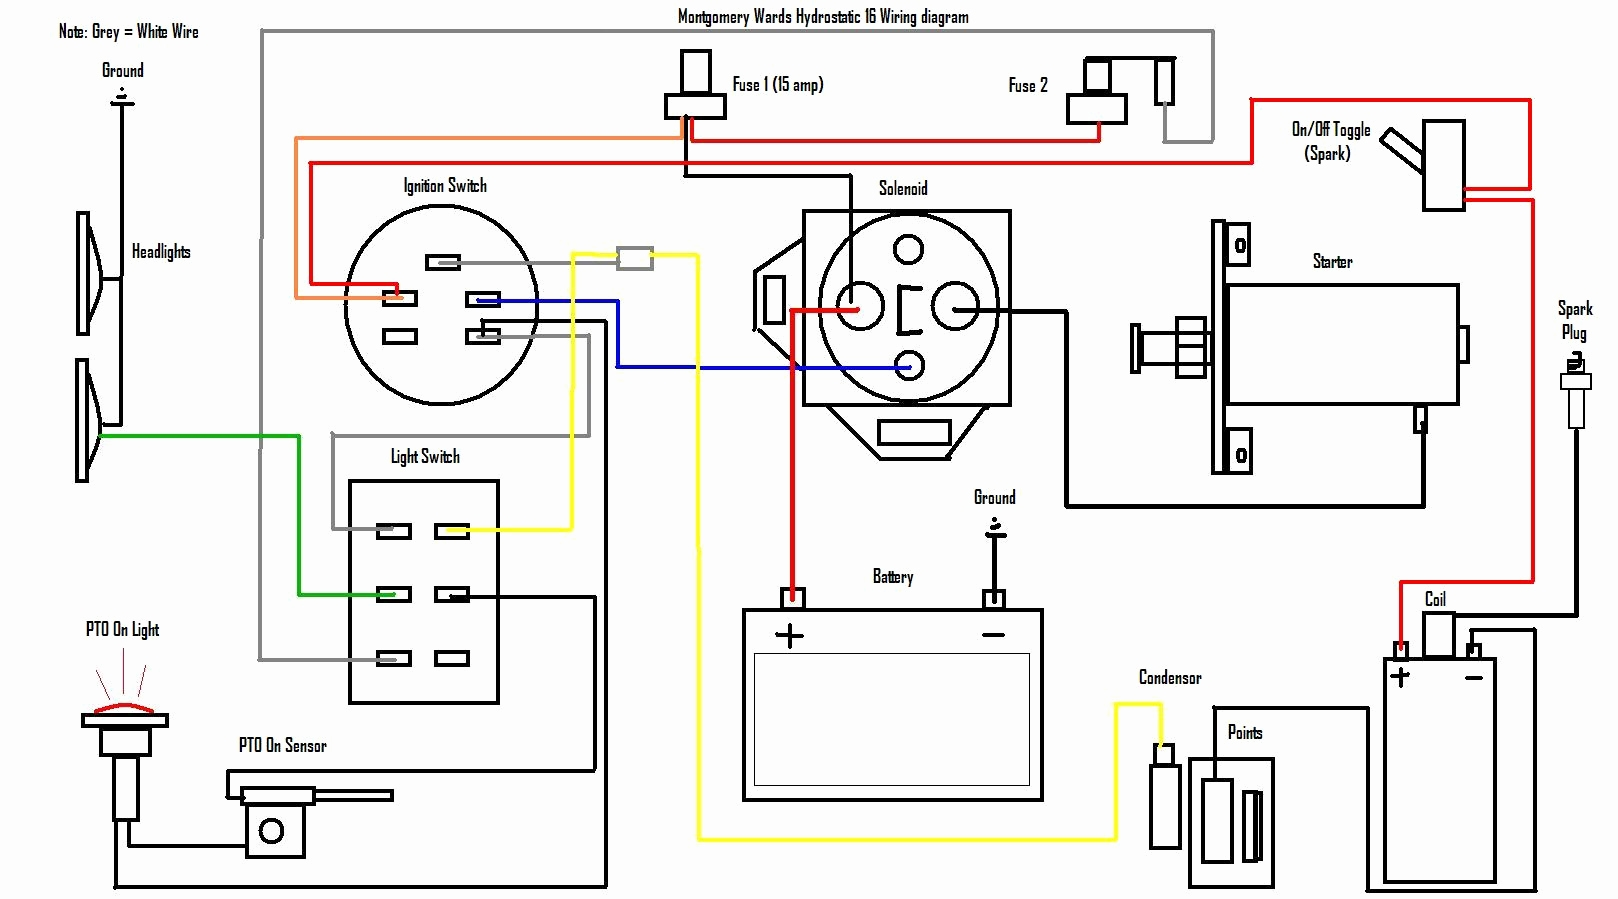 john deere lawn mower wiring diagram | free wiring diagram 3520 john deere ignition switch wiring diagram